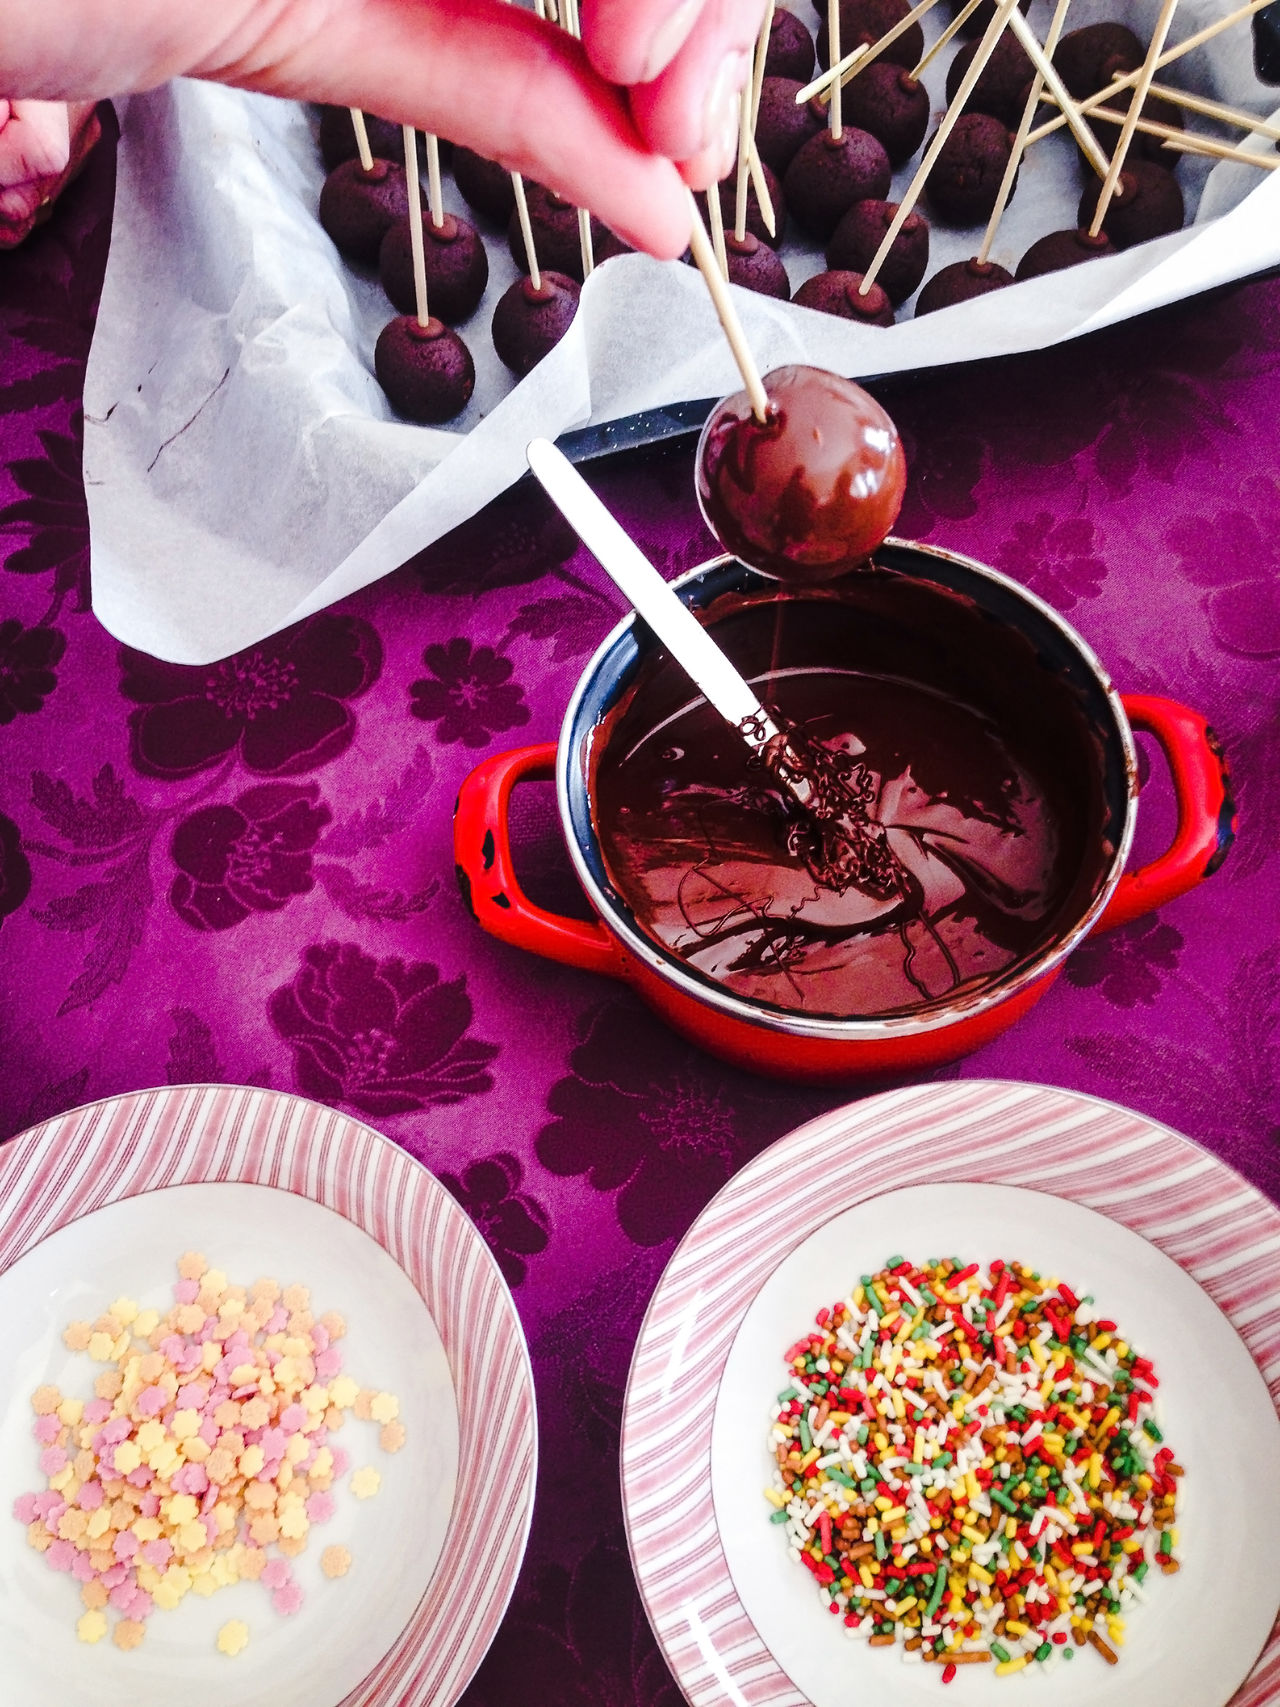 Woman making delicious choclate cakepops Bowl Cake Cakepop Cakepops Chocolate Dessert Food Food And Drink Indoors  Making Melted Pastry Plate Popcake Preparation  Sprinkles Sugar Sweet Food Table Top Perspective Variation Woman